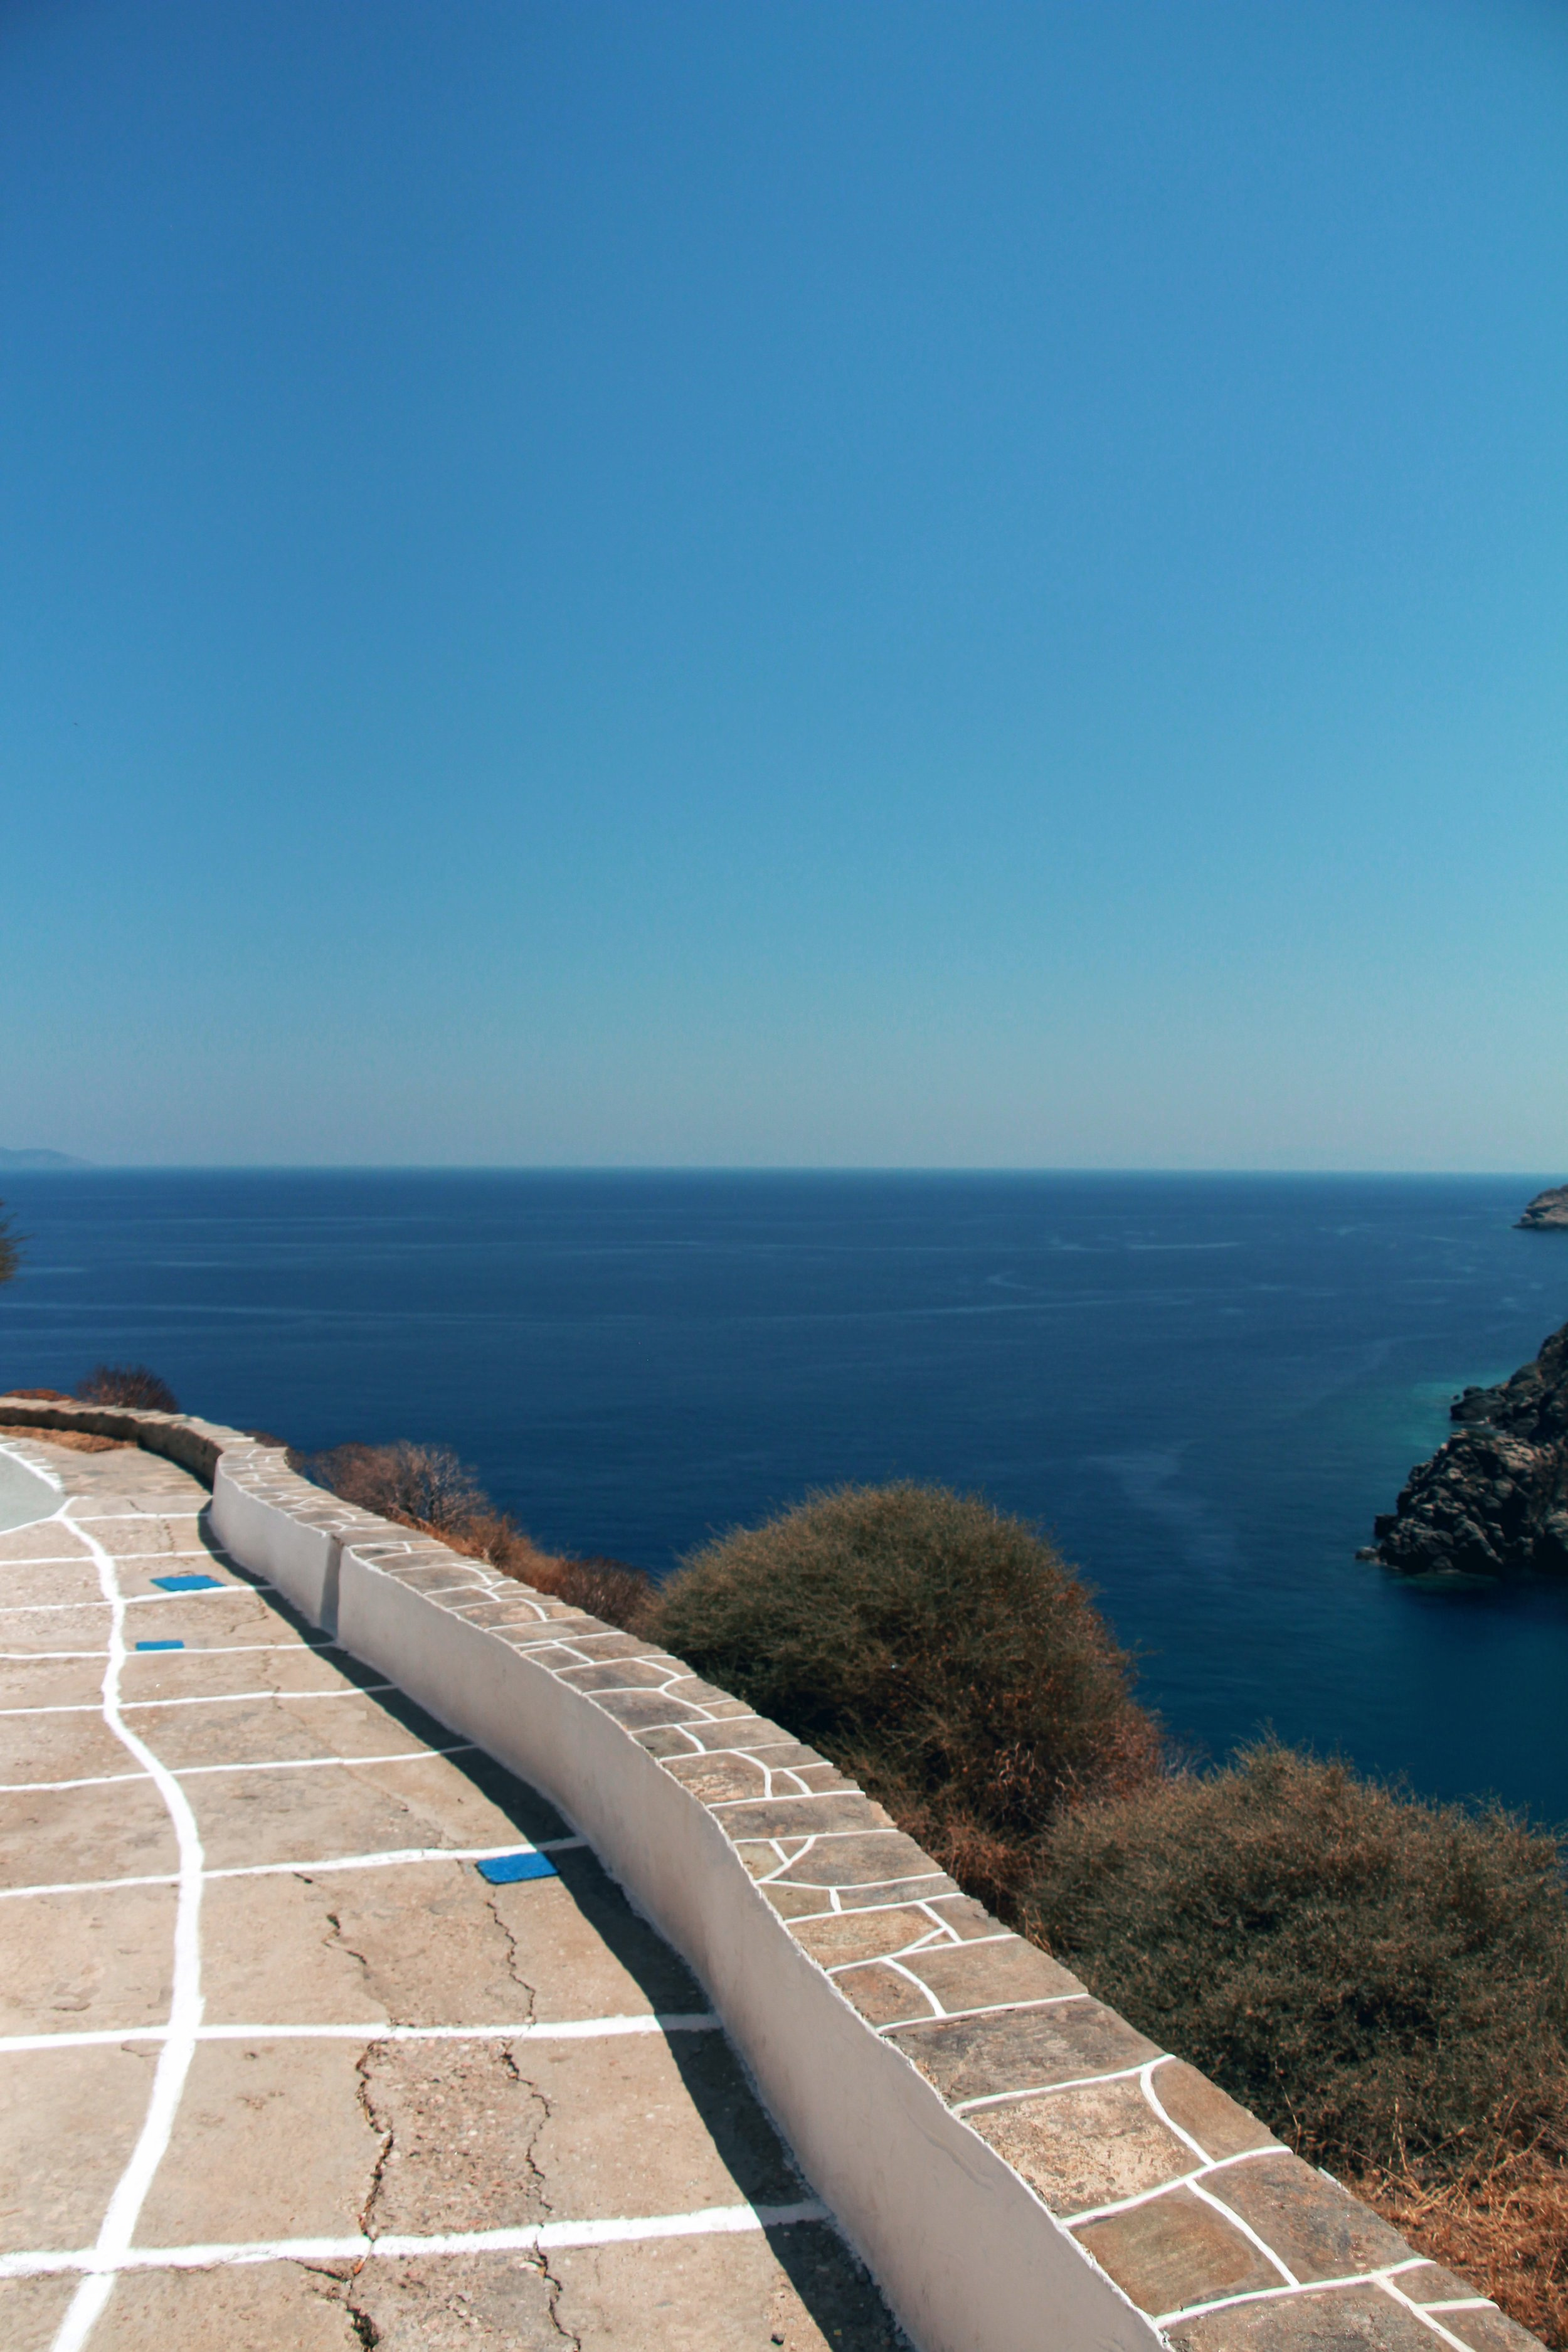 Thew view from Kastro to Antiparos is stunning